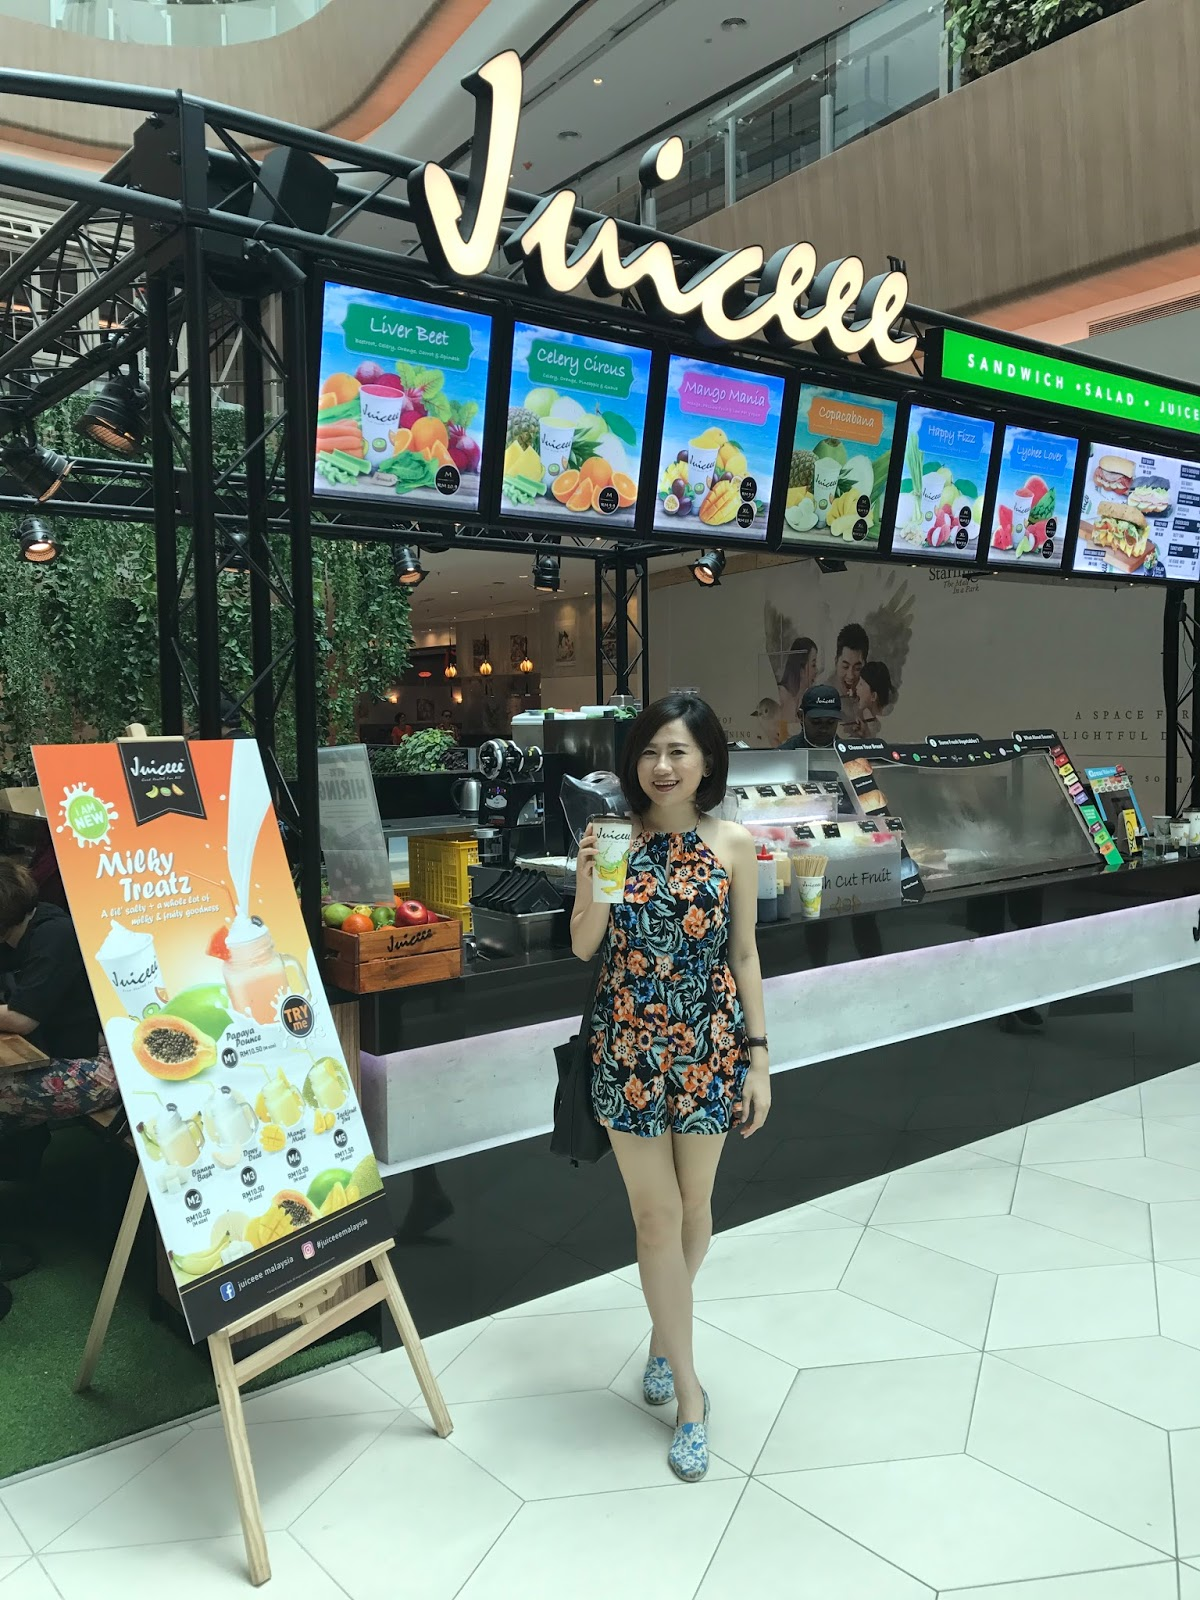 Juiceee Malaysia Continues to Innovate with Healthy Juice Drinks for all Malaysian @ The Starling Mall